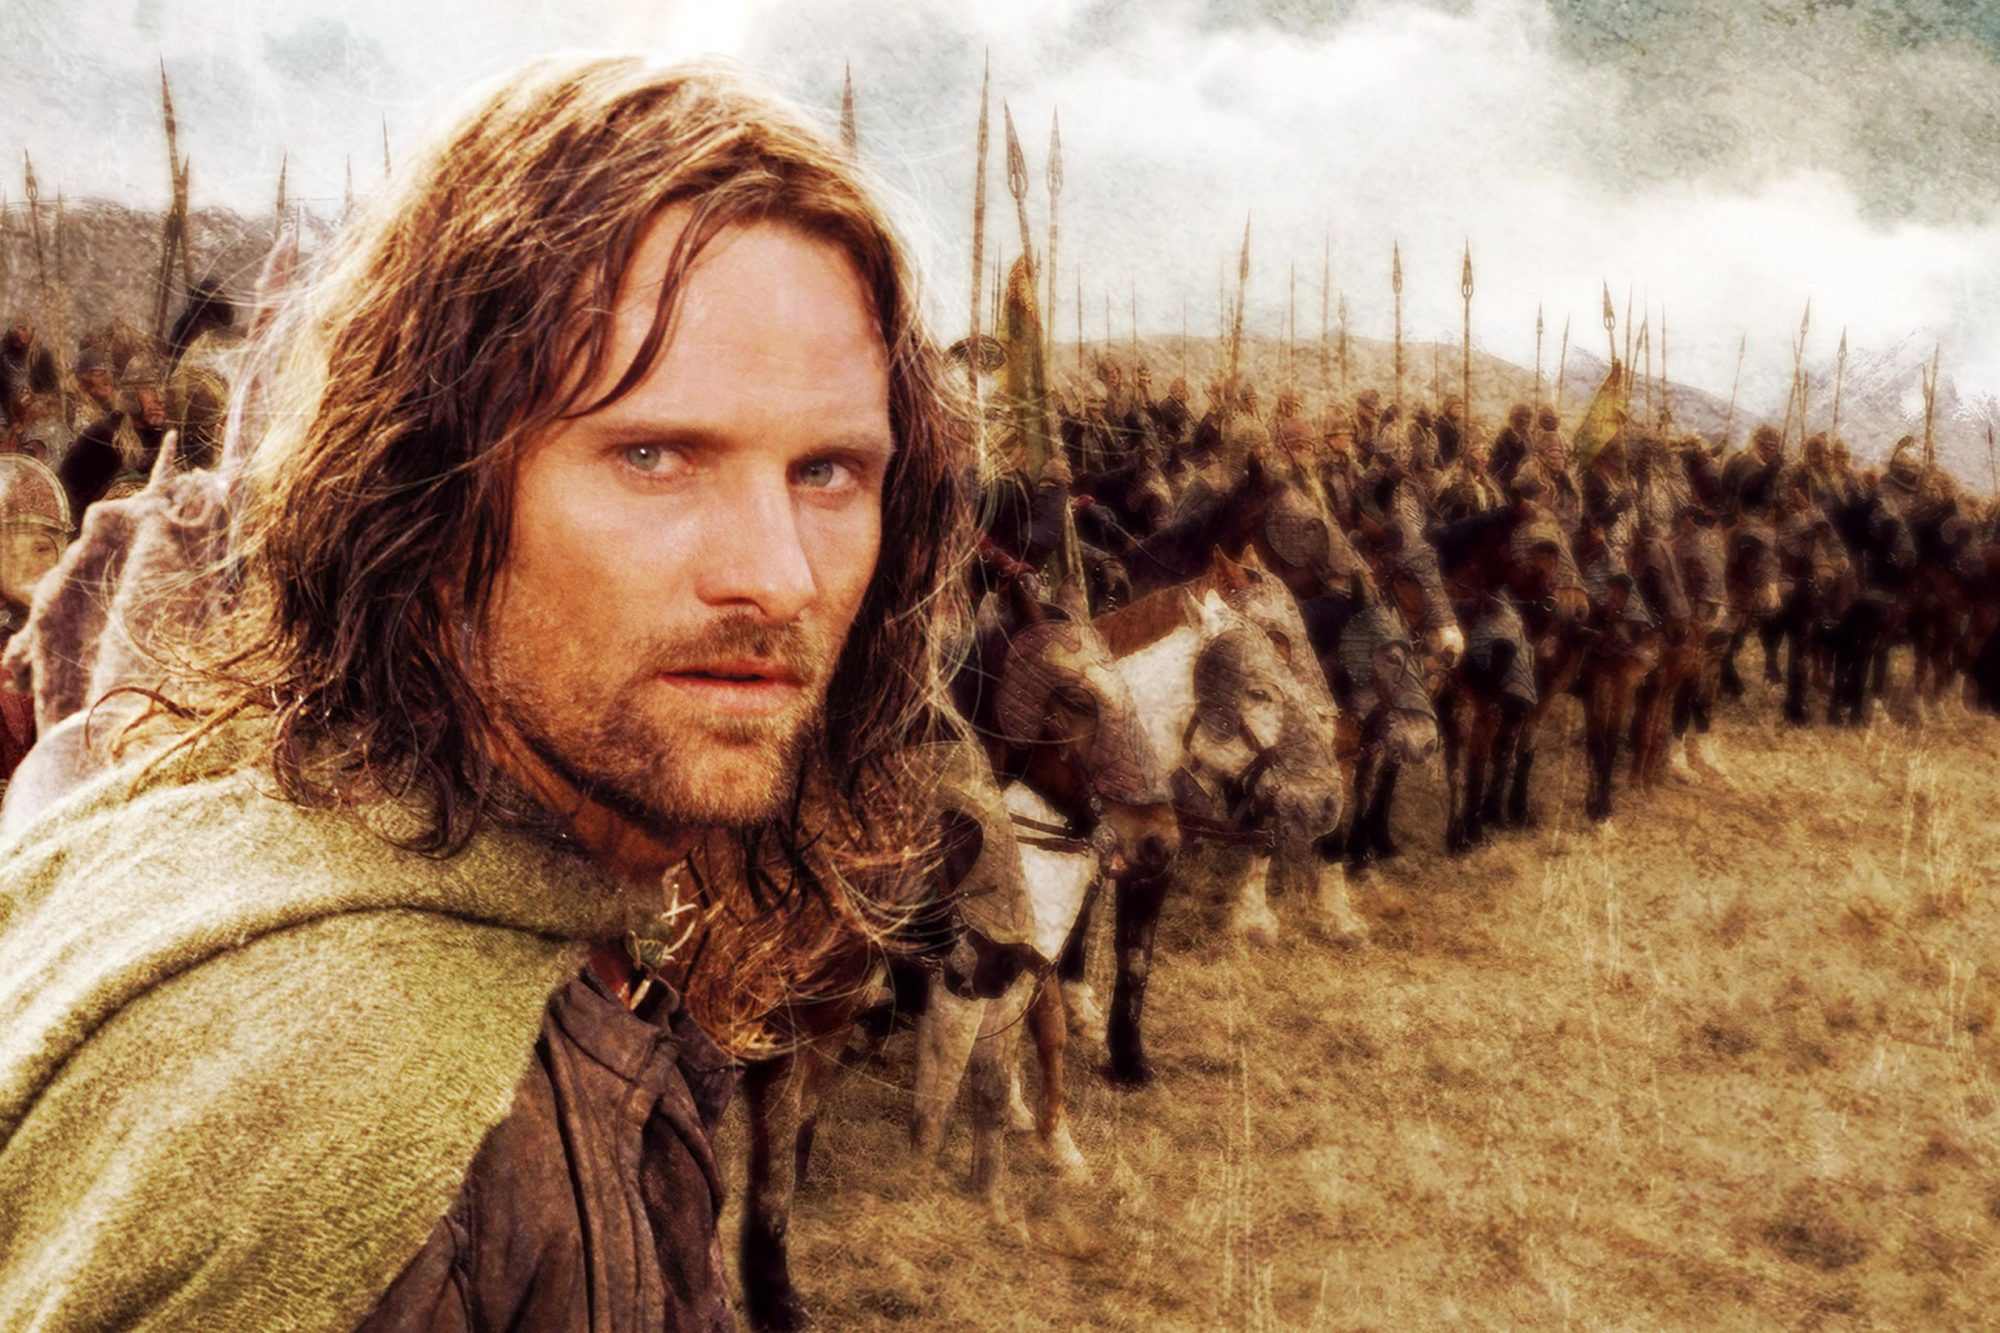 Lord of the Rings: The Return of the King (2003)Viggo Mortensen